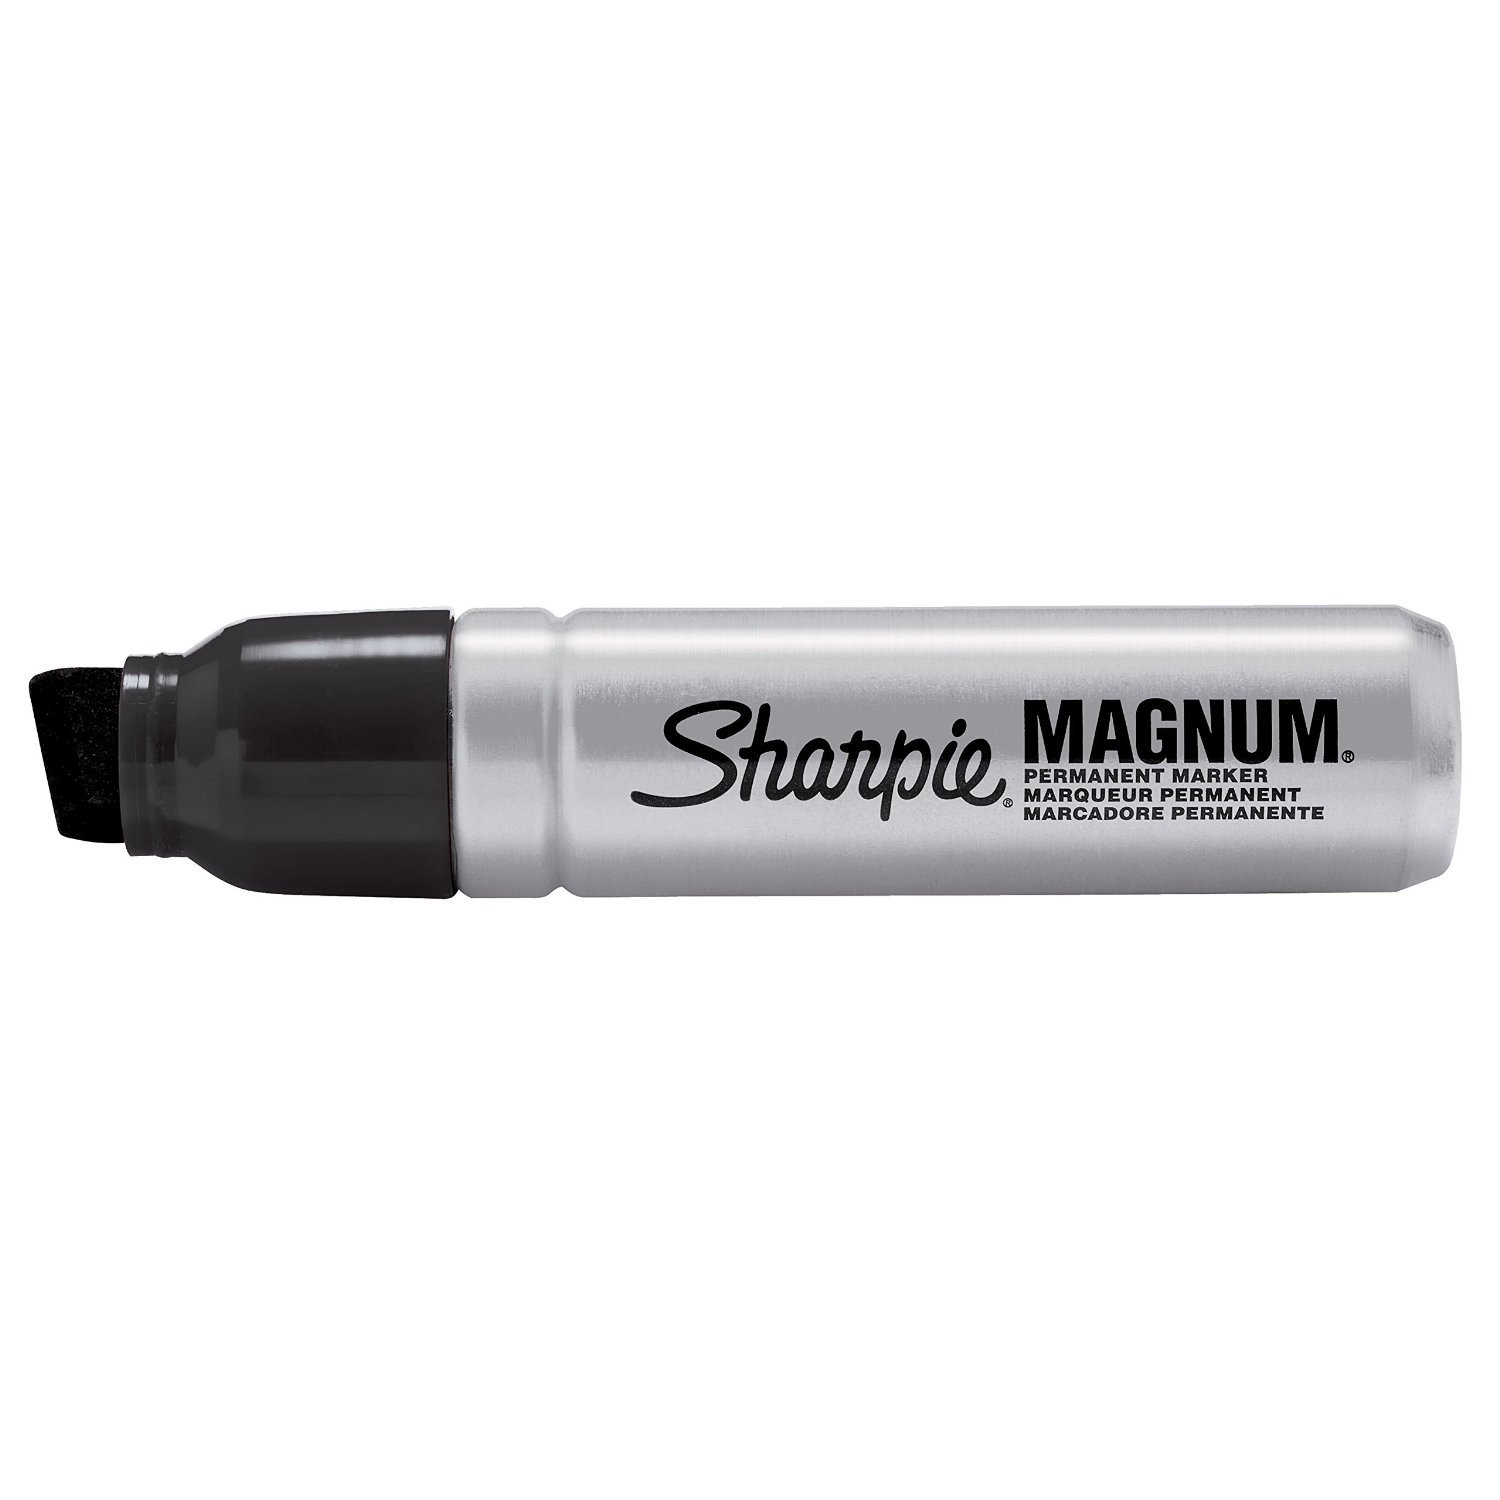 LOT Of 3 NEW Sharpie Magnum Oversized Permanent Markers BLUE XL Chisel Tip